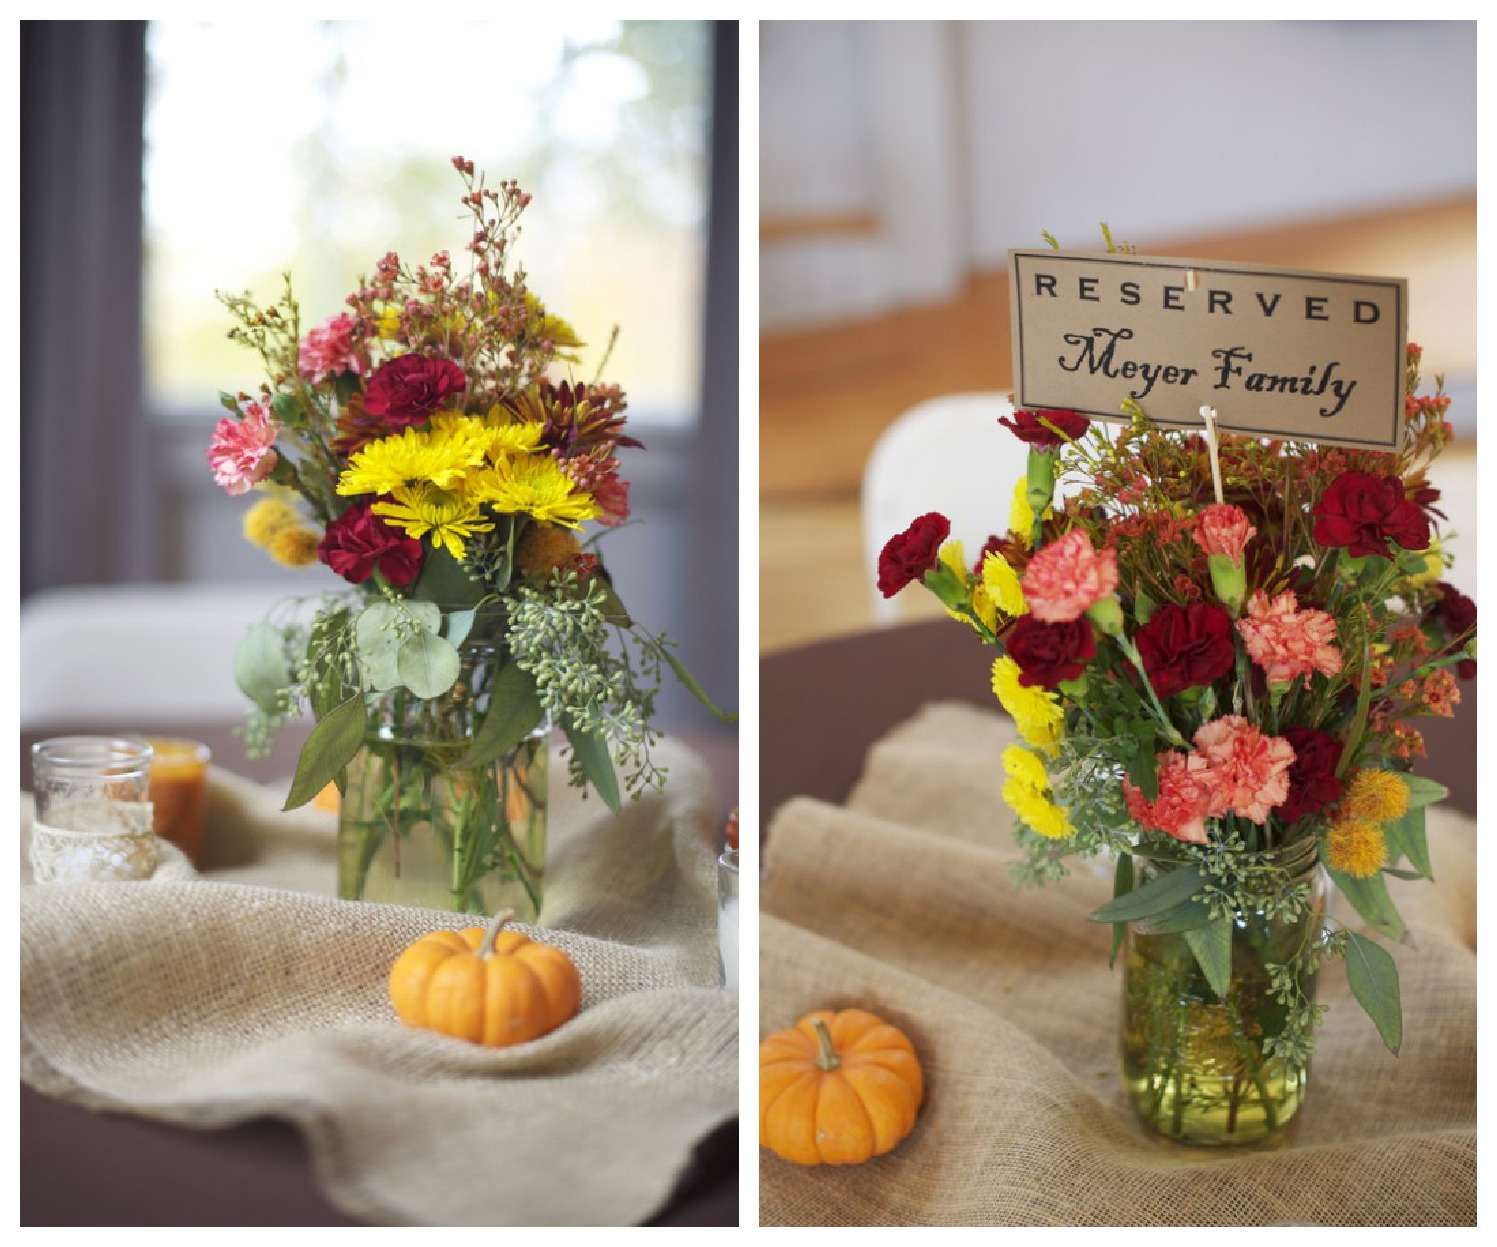 Rustic Fall Wedding Centerpiece Ideas : Rustic wedding centerpiece ideas chic